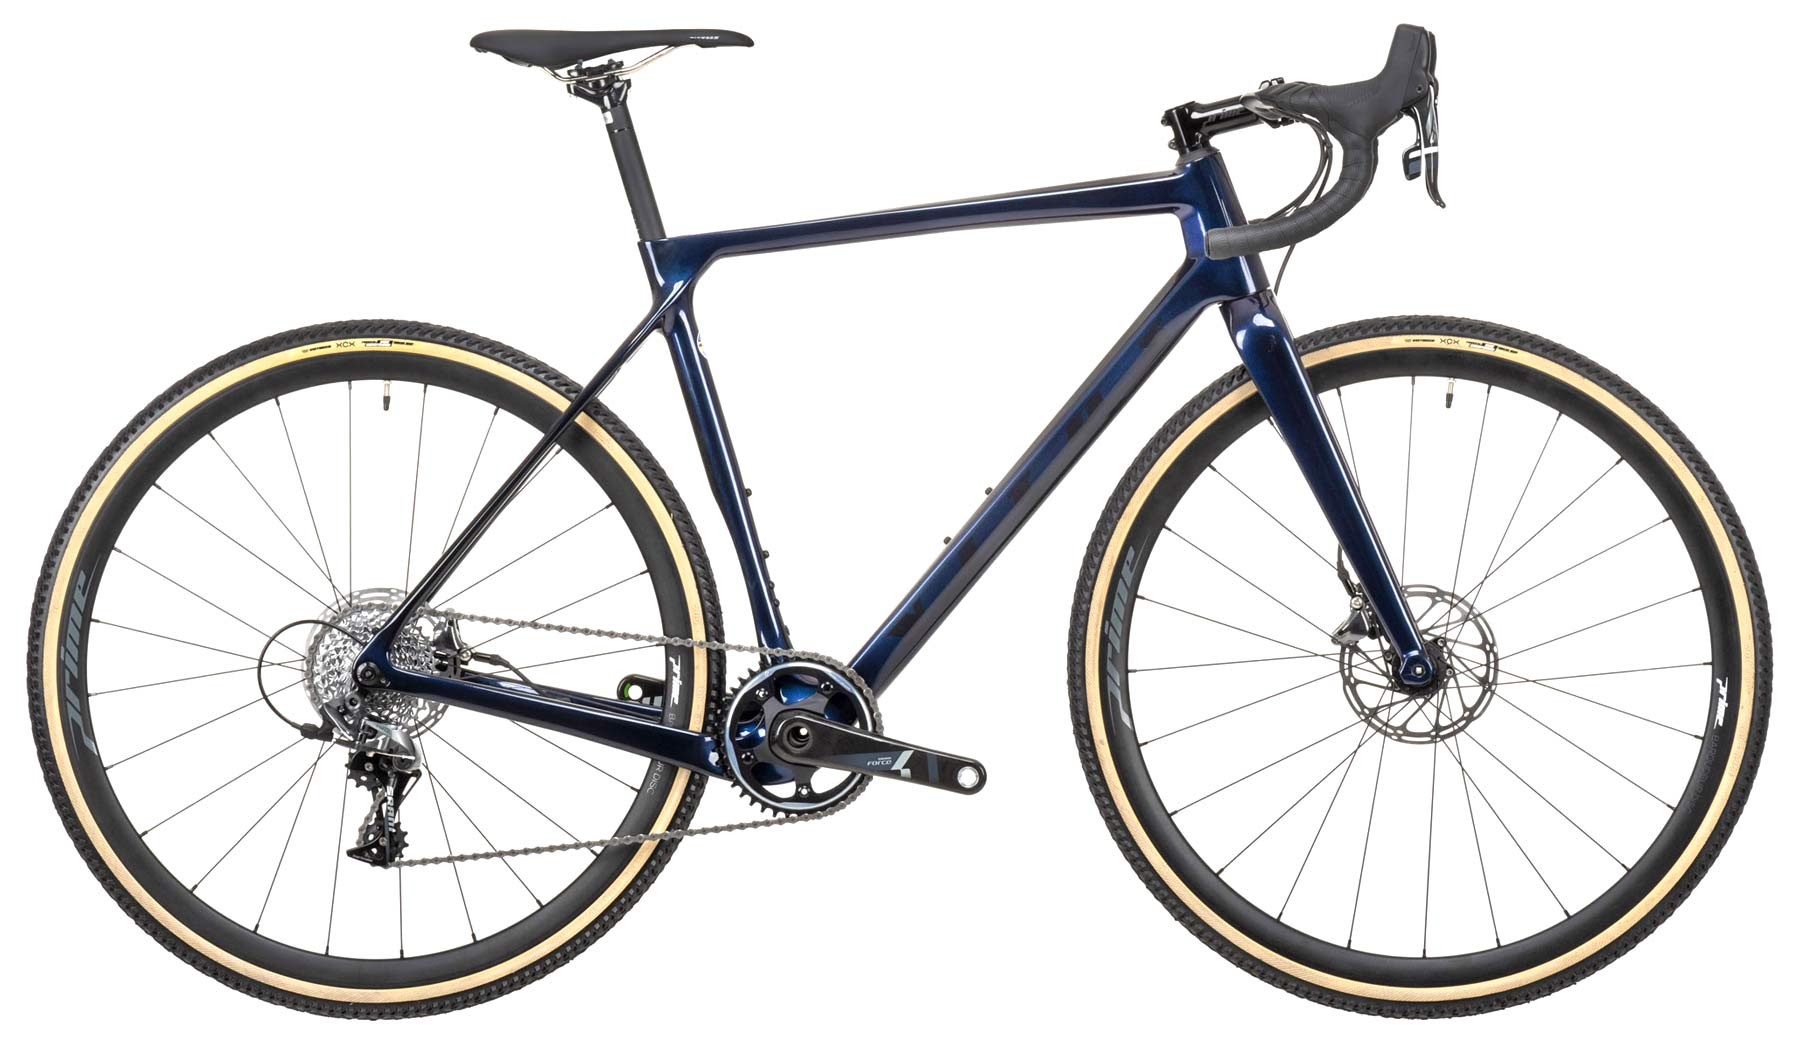 2021 Vitus Energie EVO cyclocross bike, race-ready lightweight affordable carbon CX bike, CRS